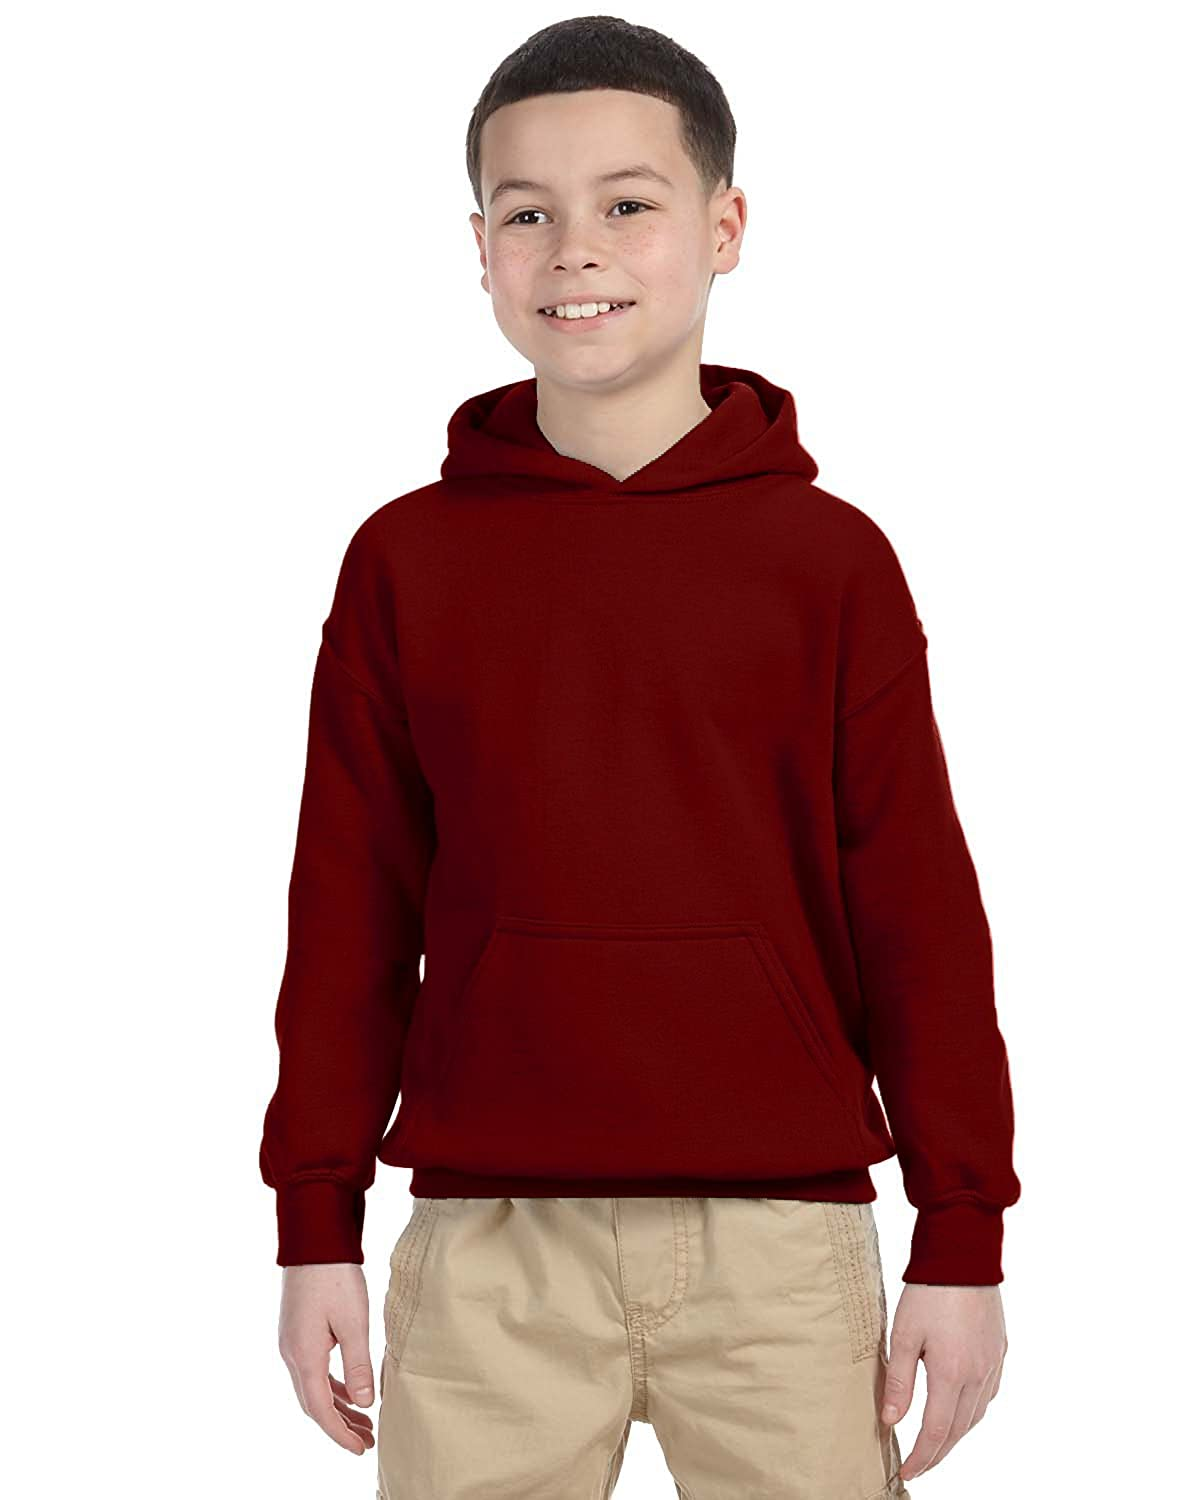 Indica Plateau Youth Lvl 1 Crook Kids Hoodie